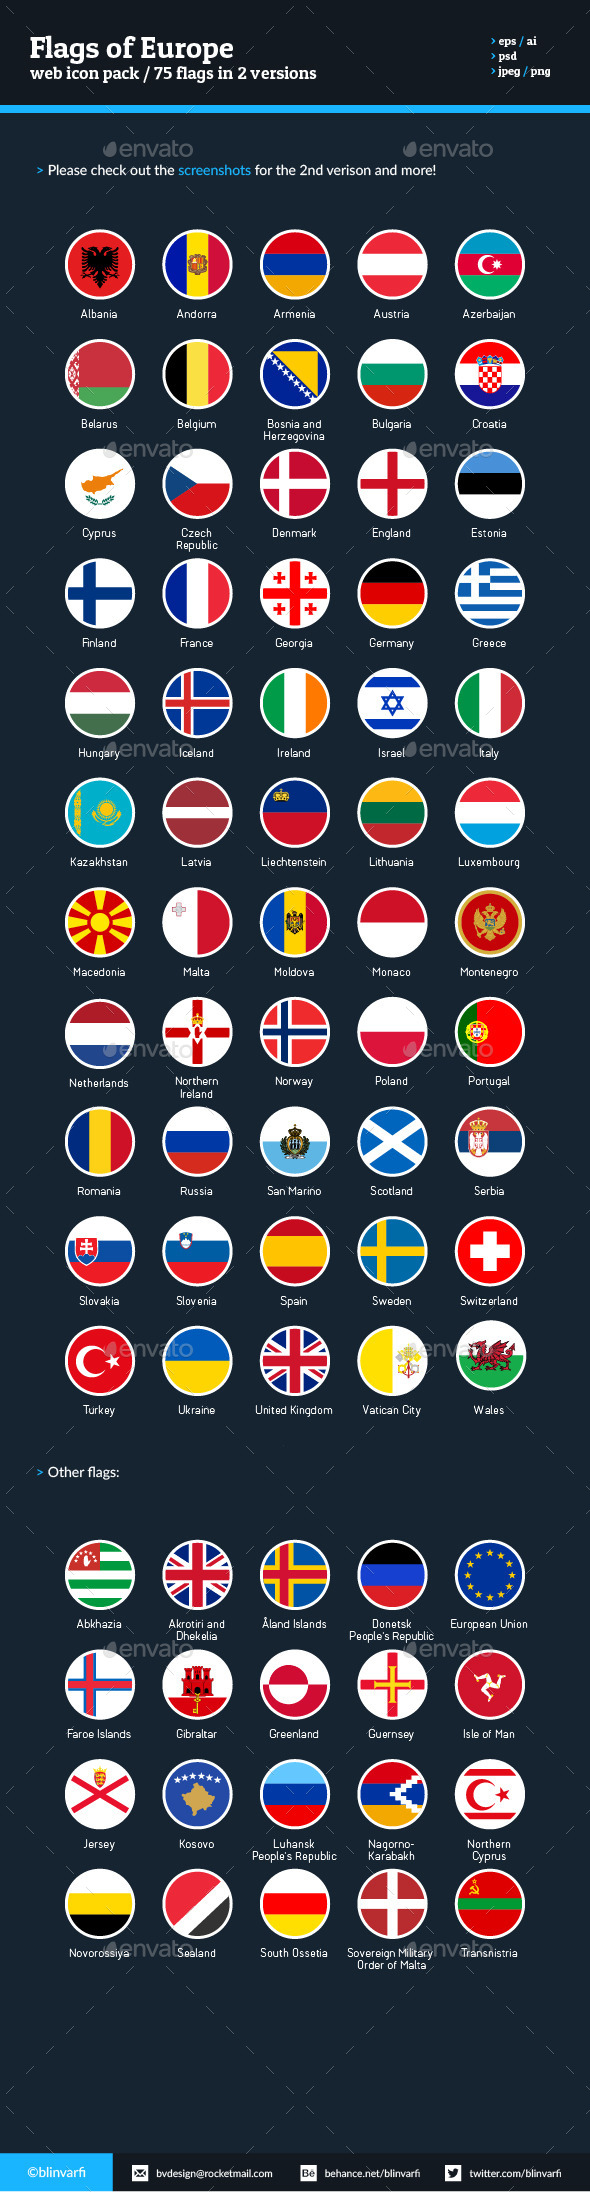 Flags of Europe - Flag Icons - Web Icons